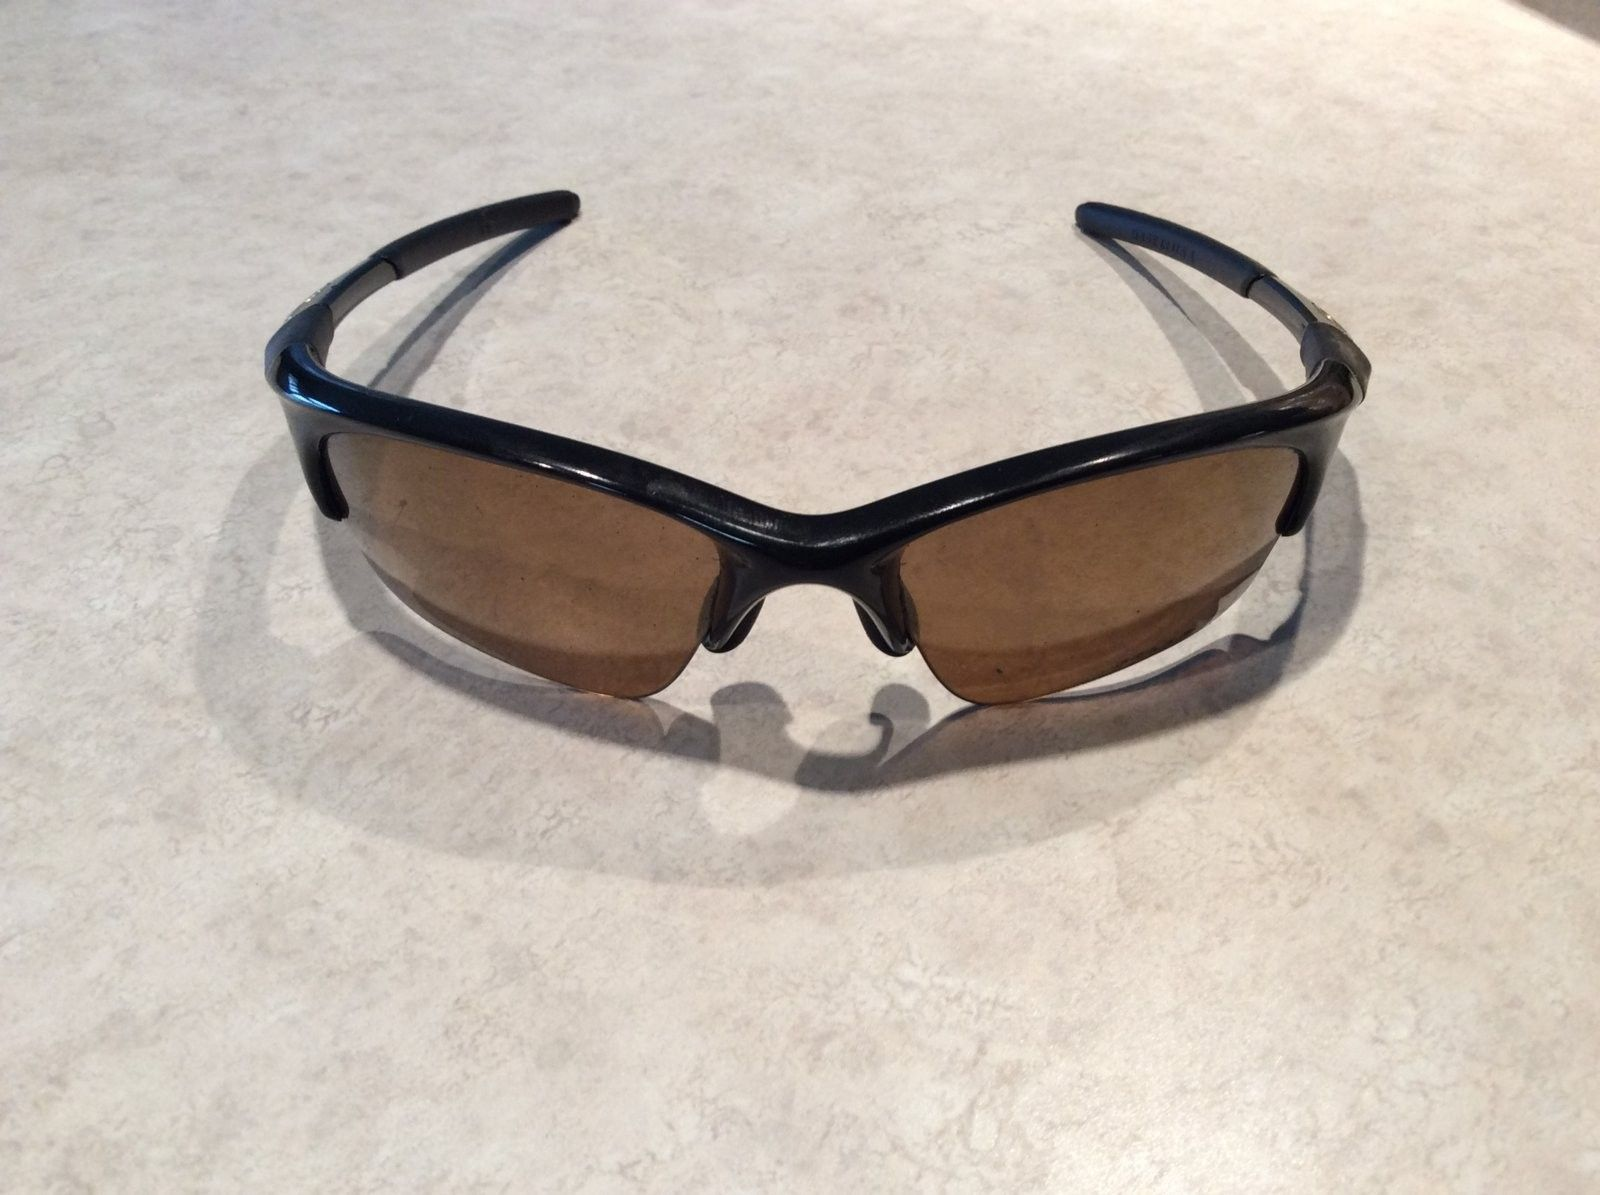 Need help identify my Oakley Glasses - image.jpeg